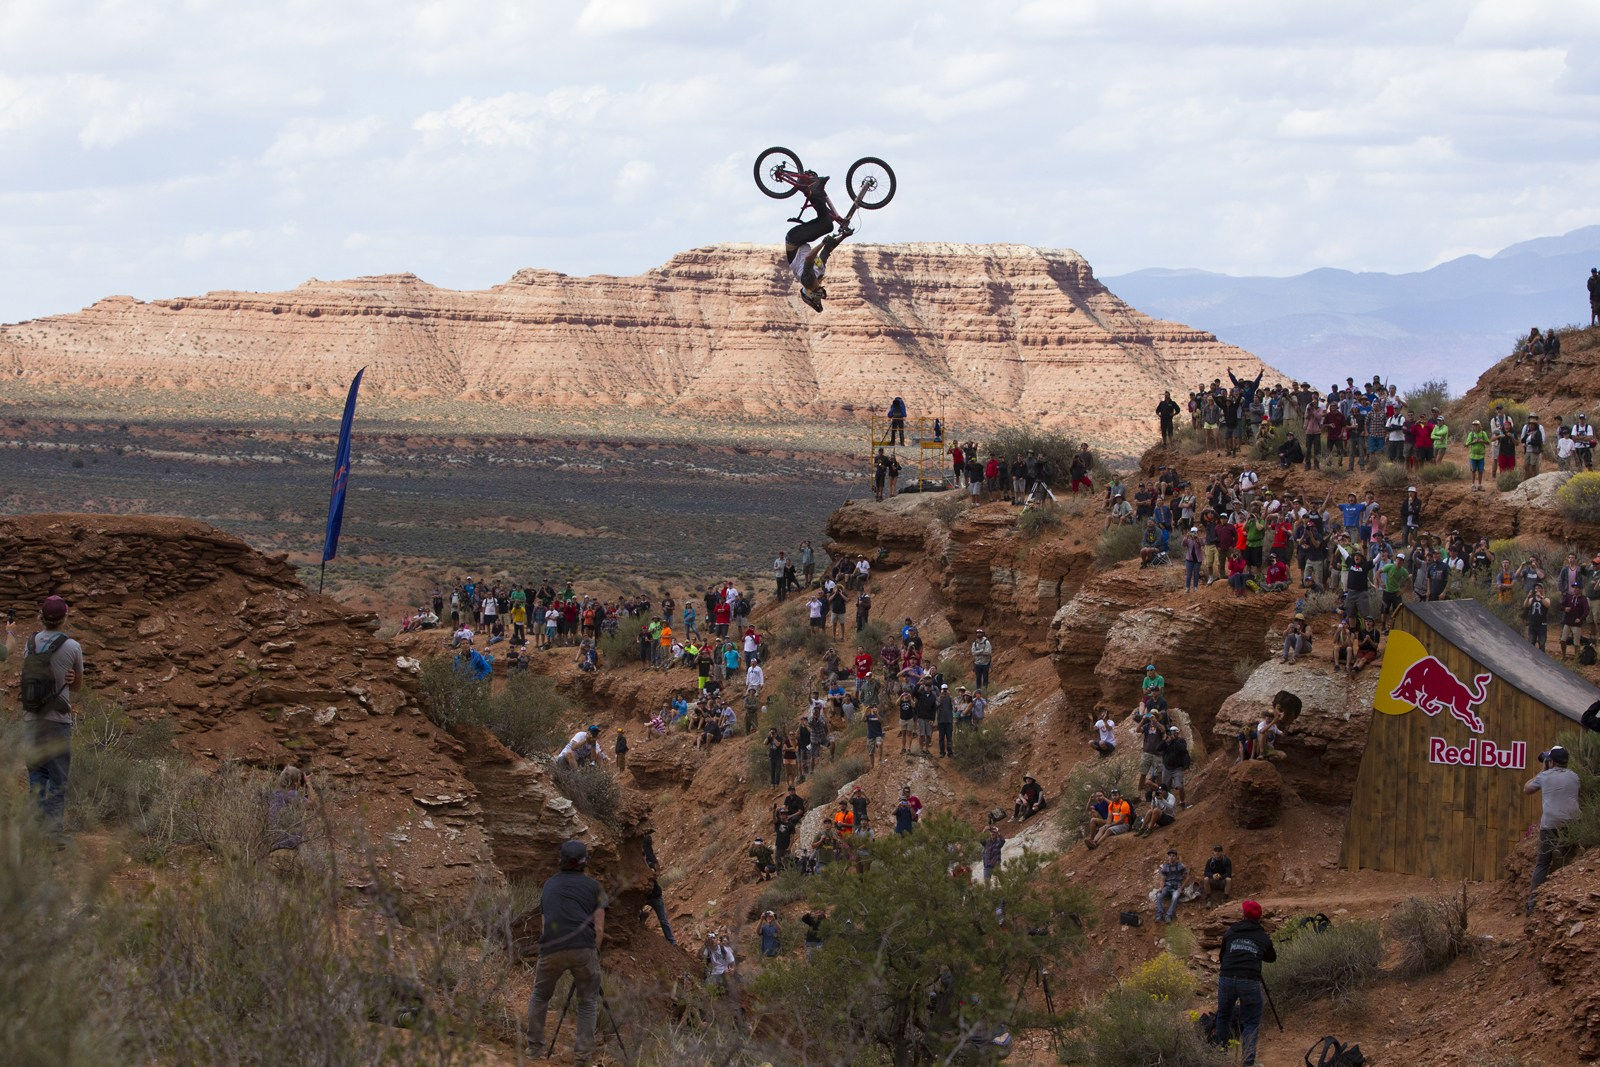 Kelly McGary throws one of the biggest backflips in the history of MTB at the 2013 edition of Red Bull Rampage.